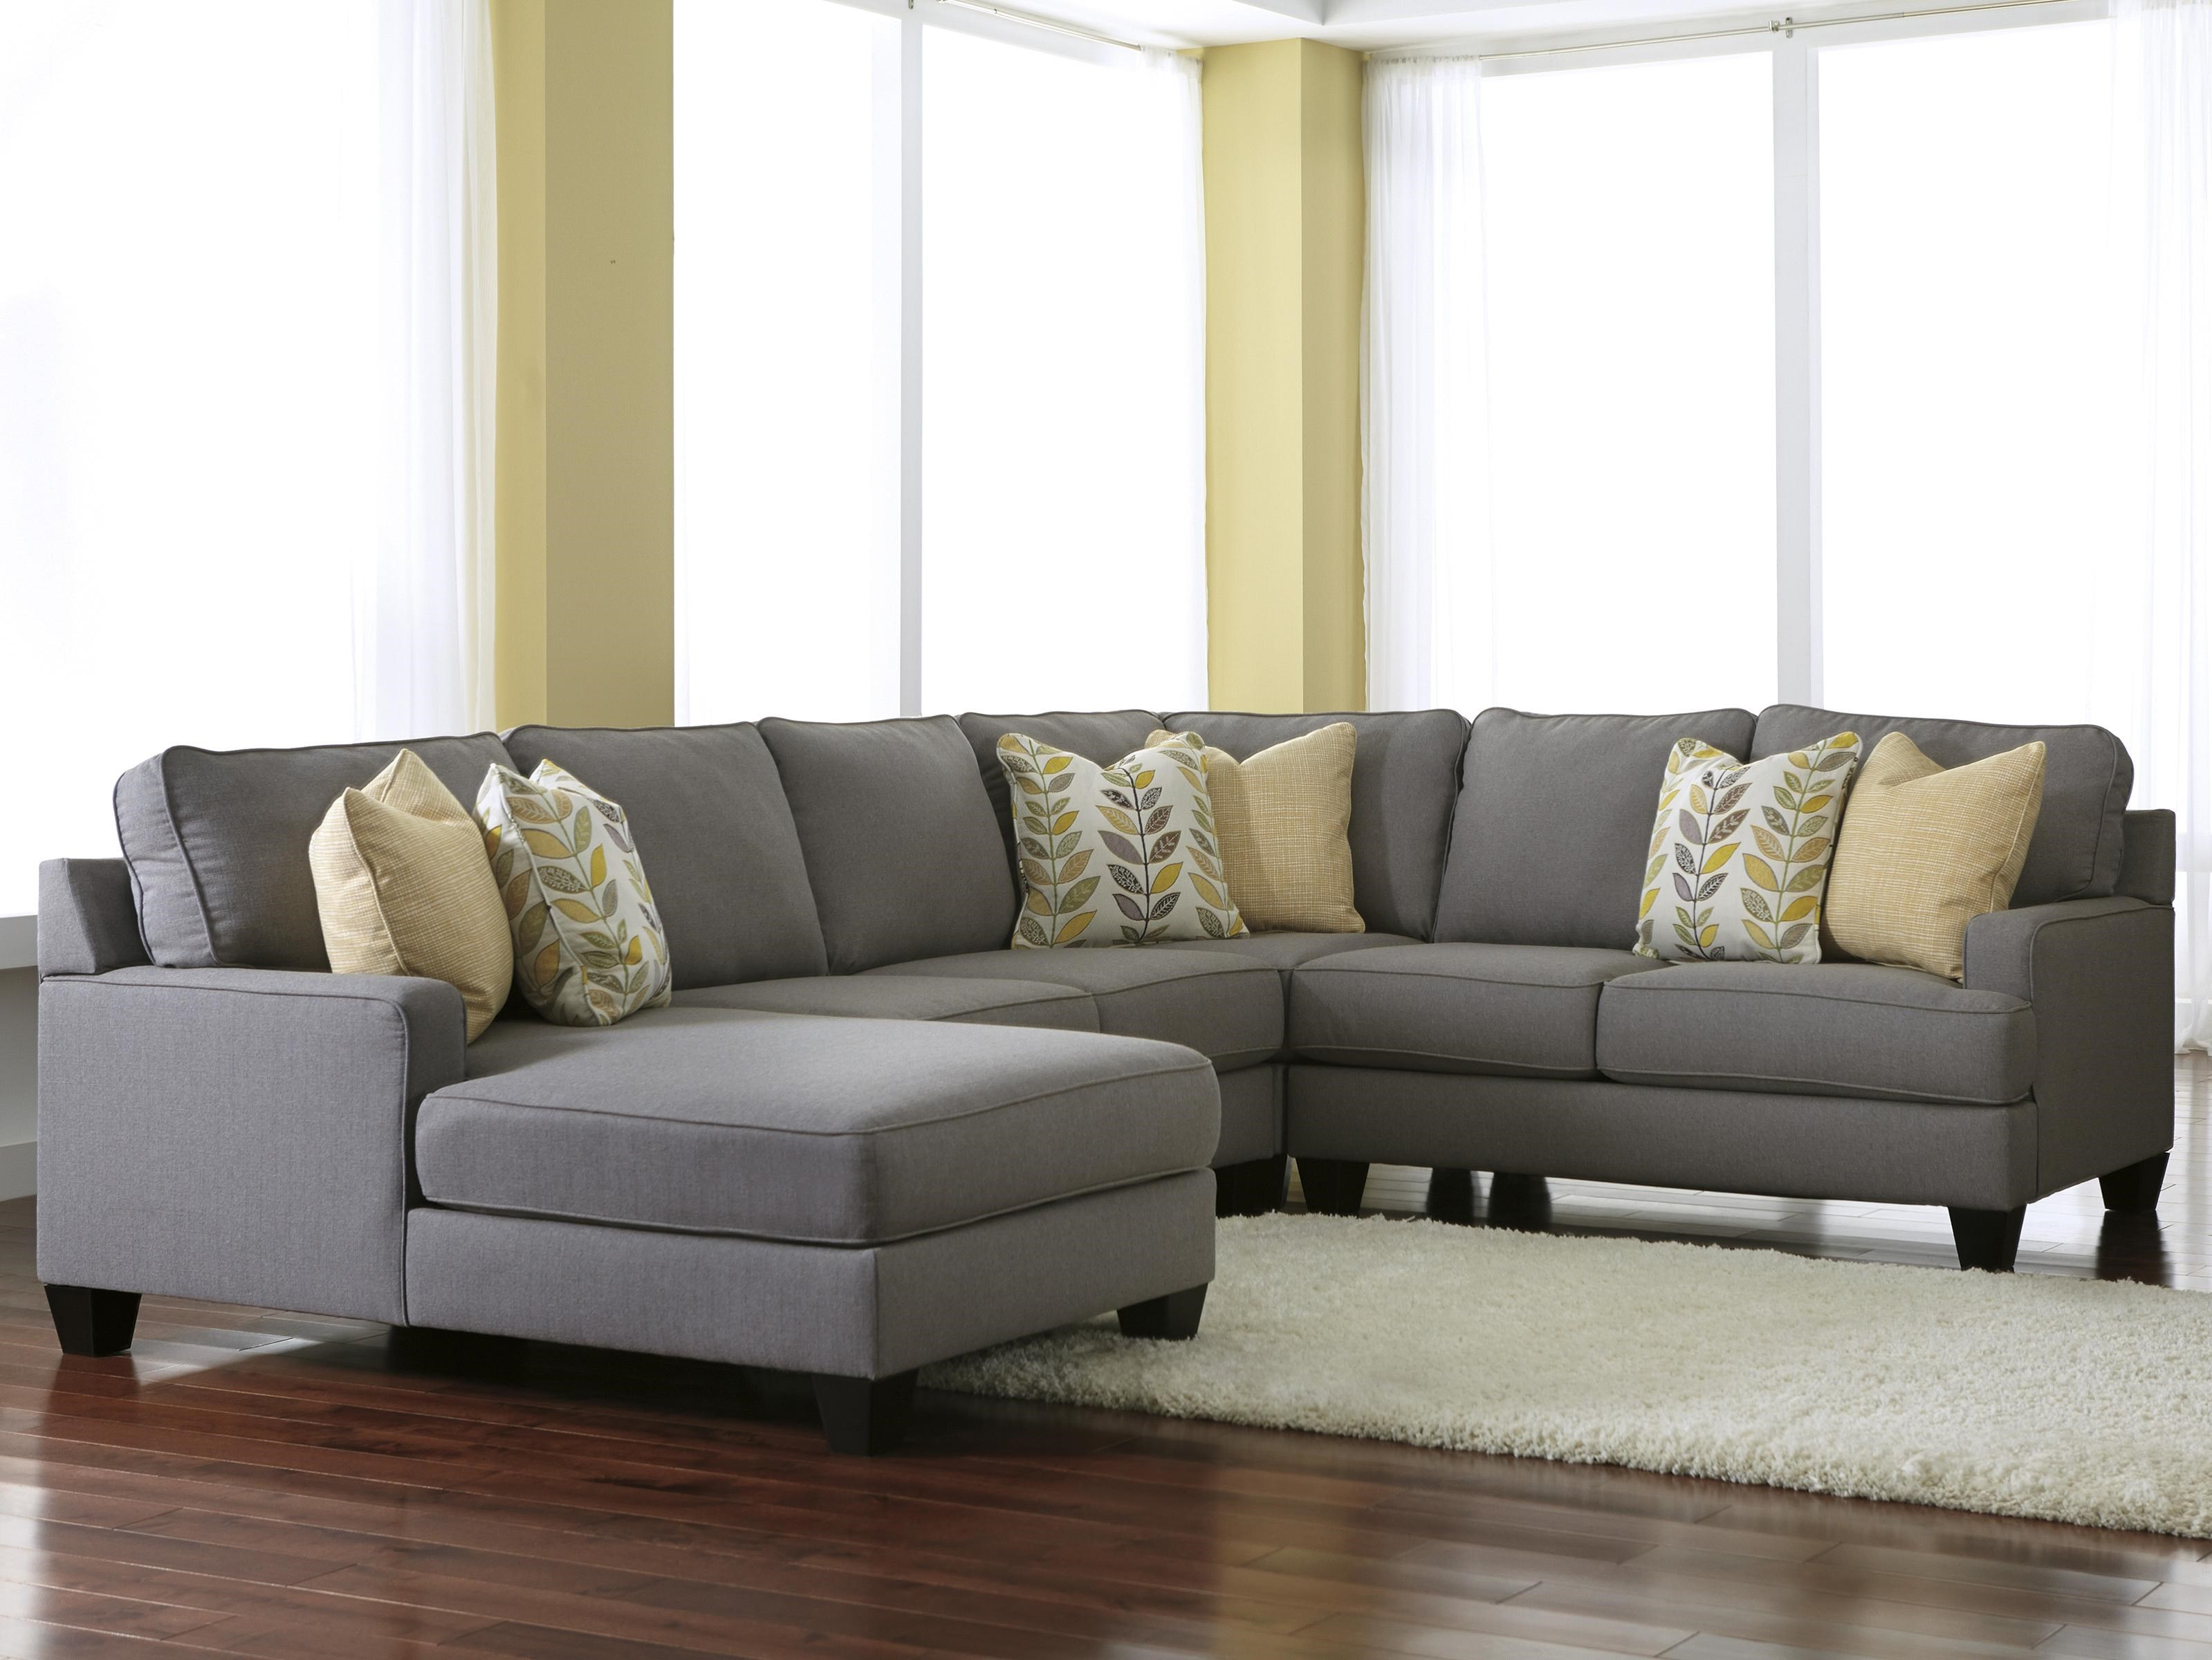 Signature Design By Ashley Chamberly   Alloy Modern 4 Piece Sectional Sofa  With Left Chaise